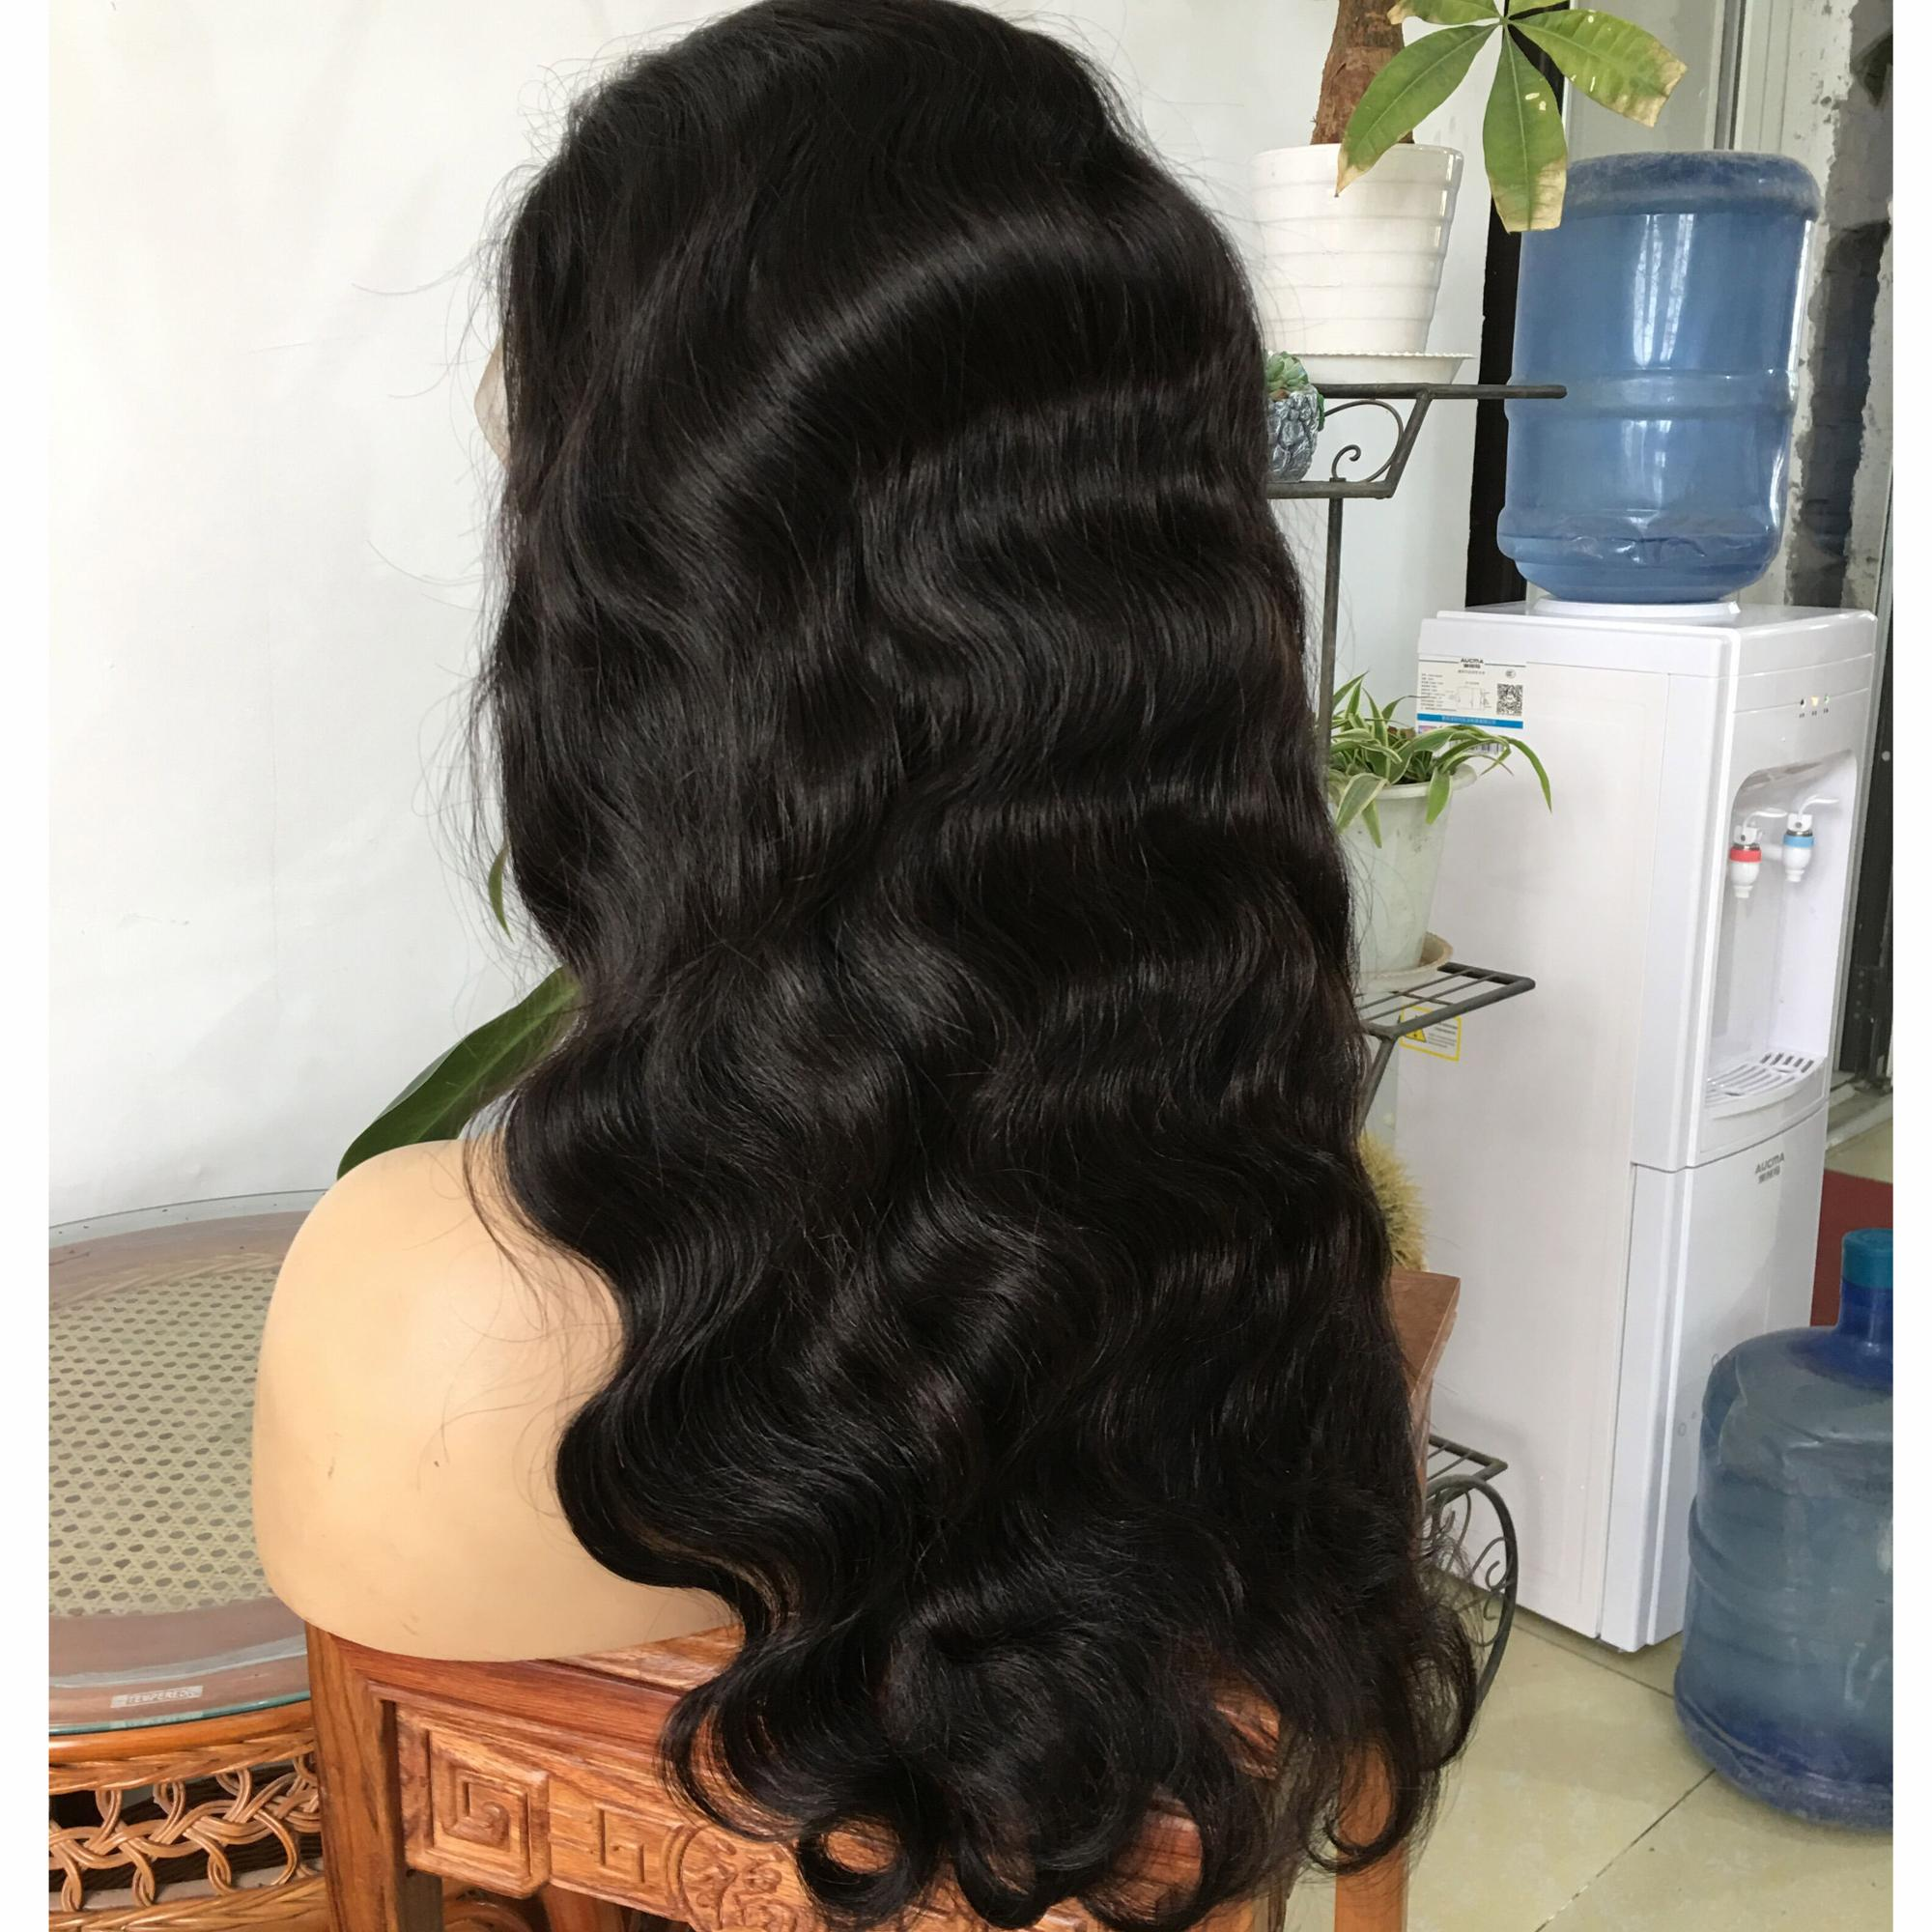 180% density glueless body wave 8a grade raw virgin brazilian hair lace front wig human hair wig